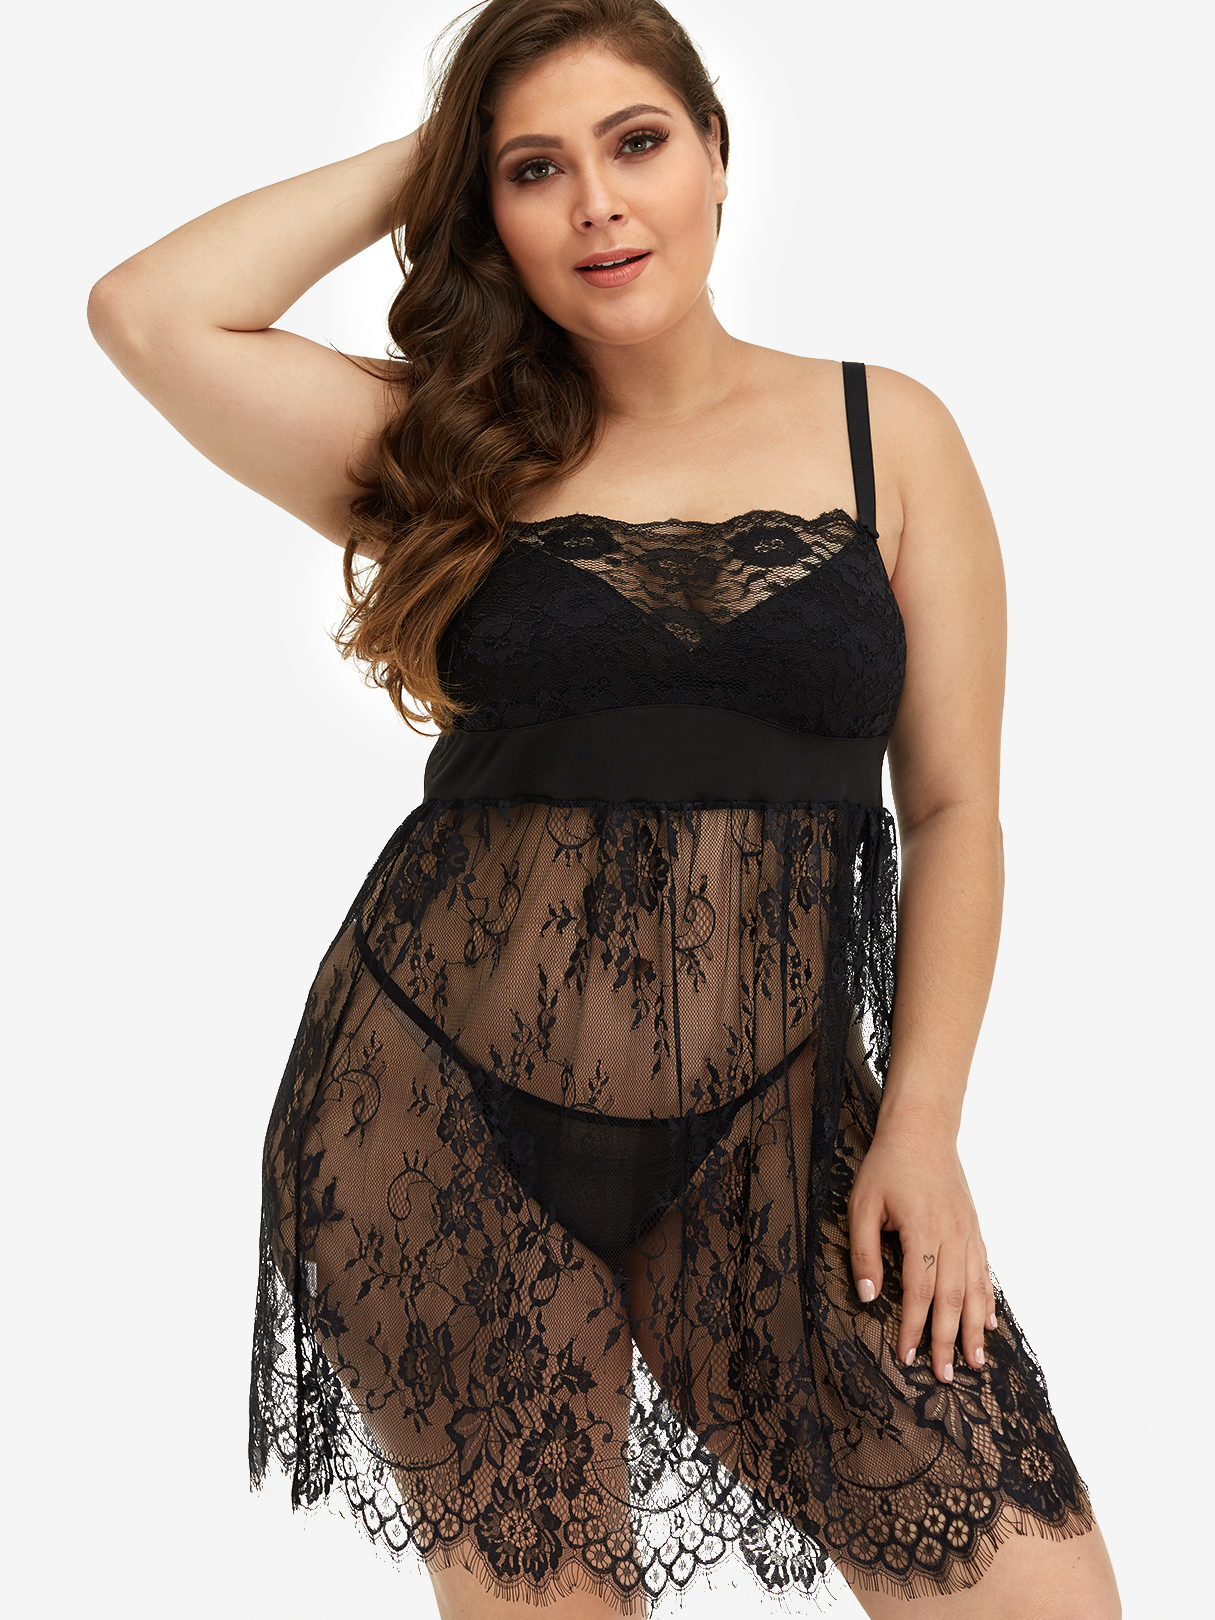 Plus Size Black Lace Floral Babydoll With Thong